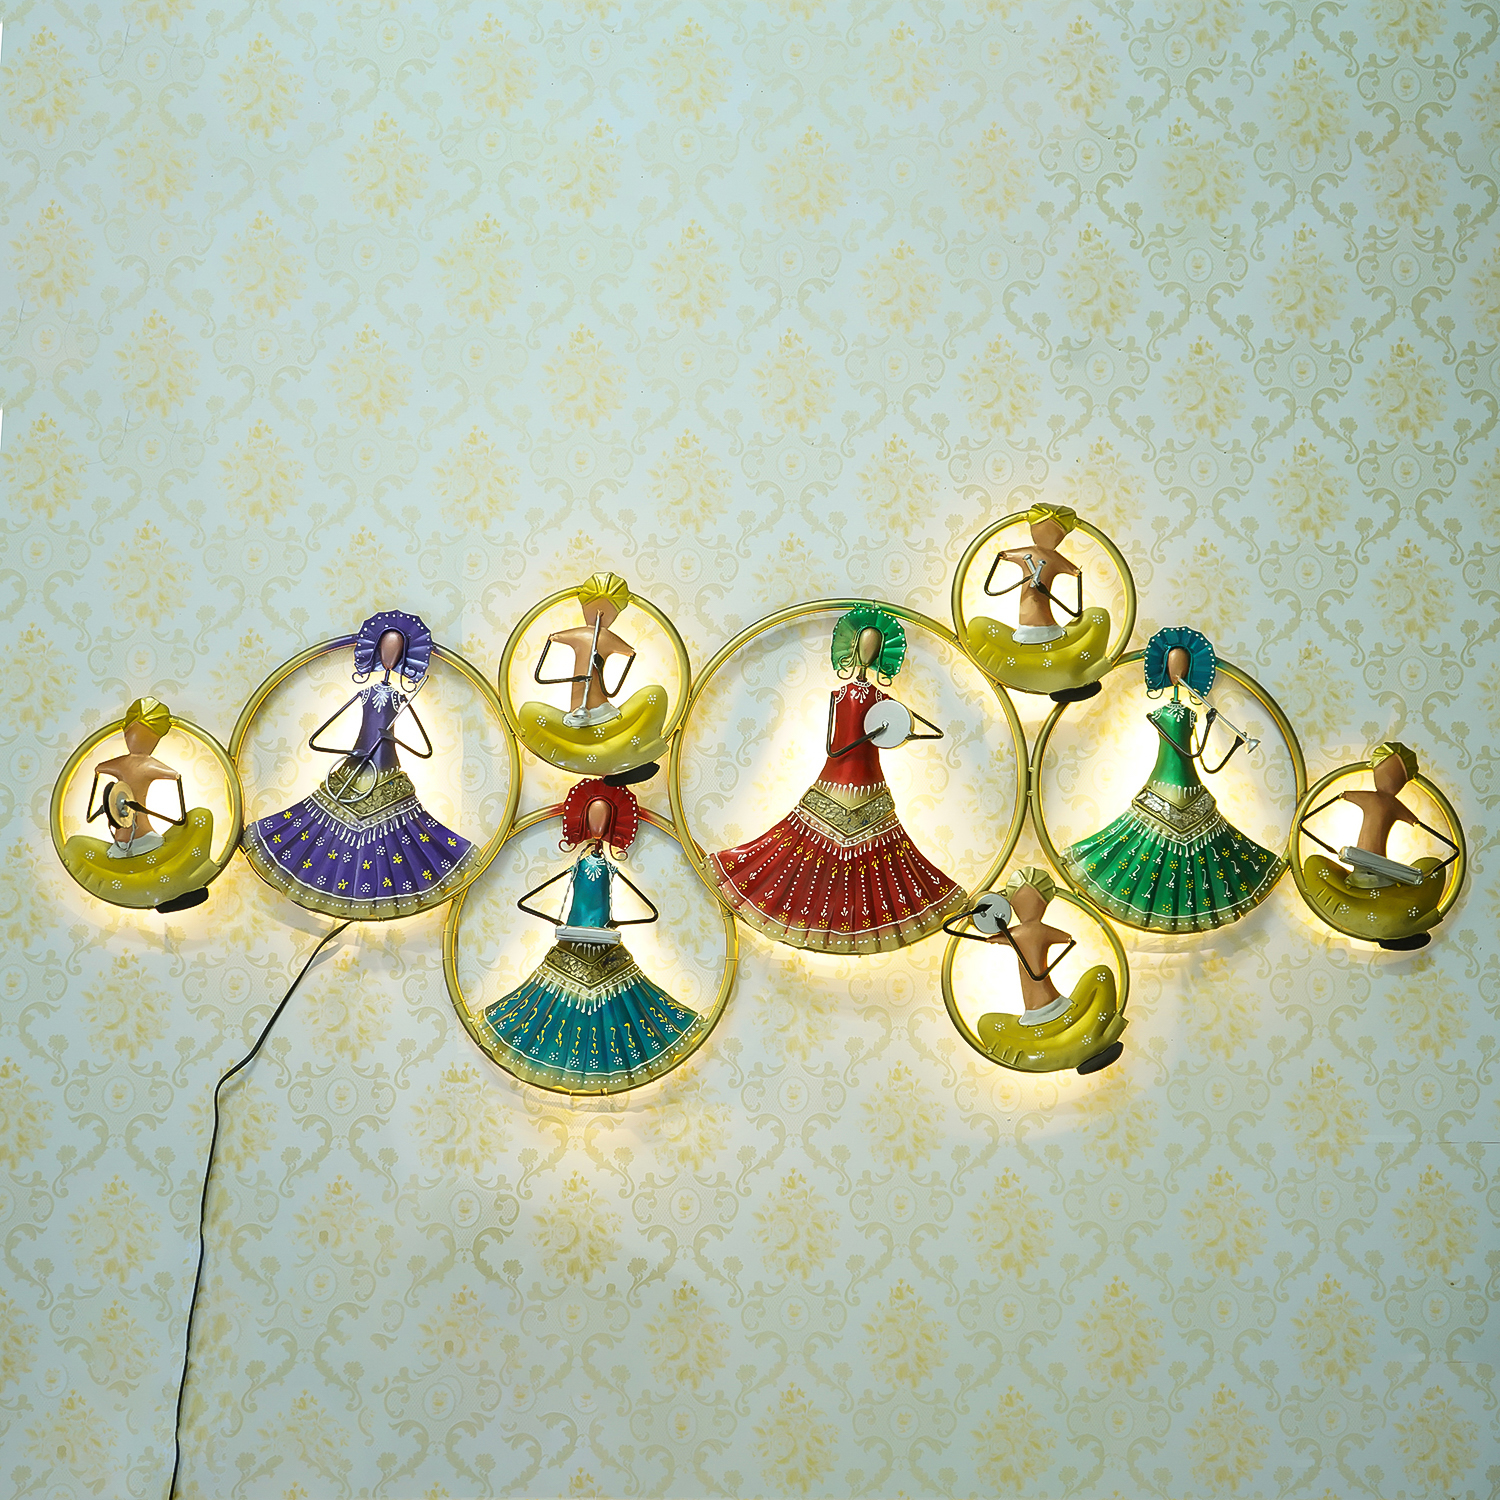 Group of Dancing Tribal Women Handcrafted Iron Wall Hanging with background LEDs Indian Home Decor